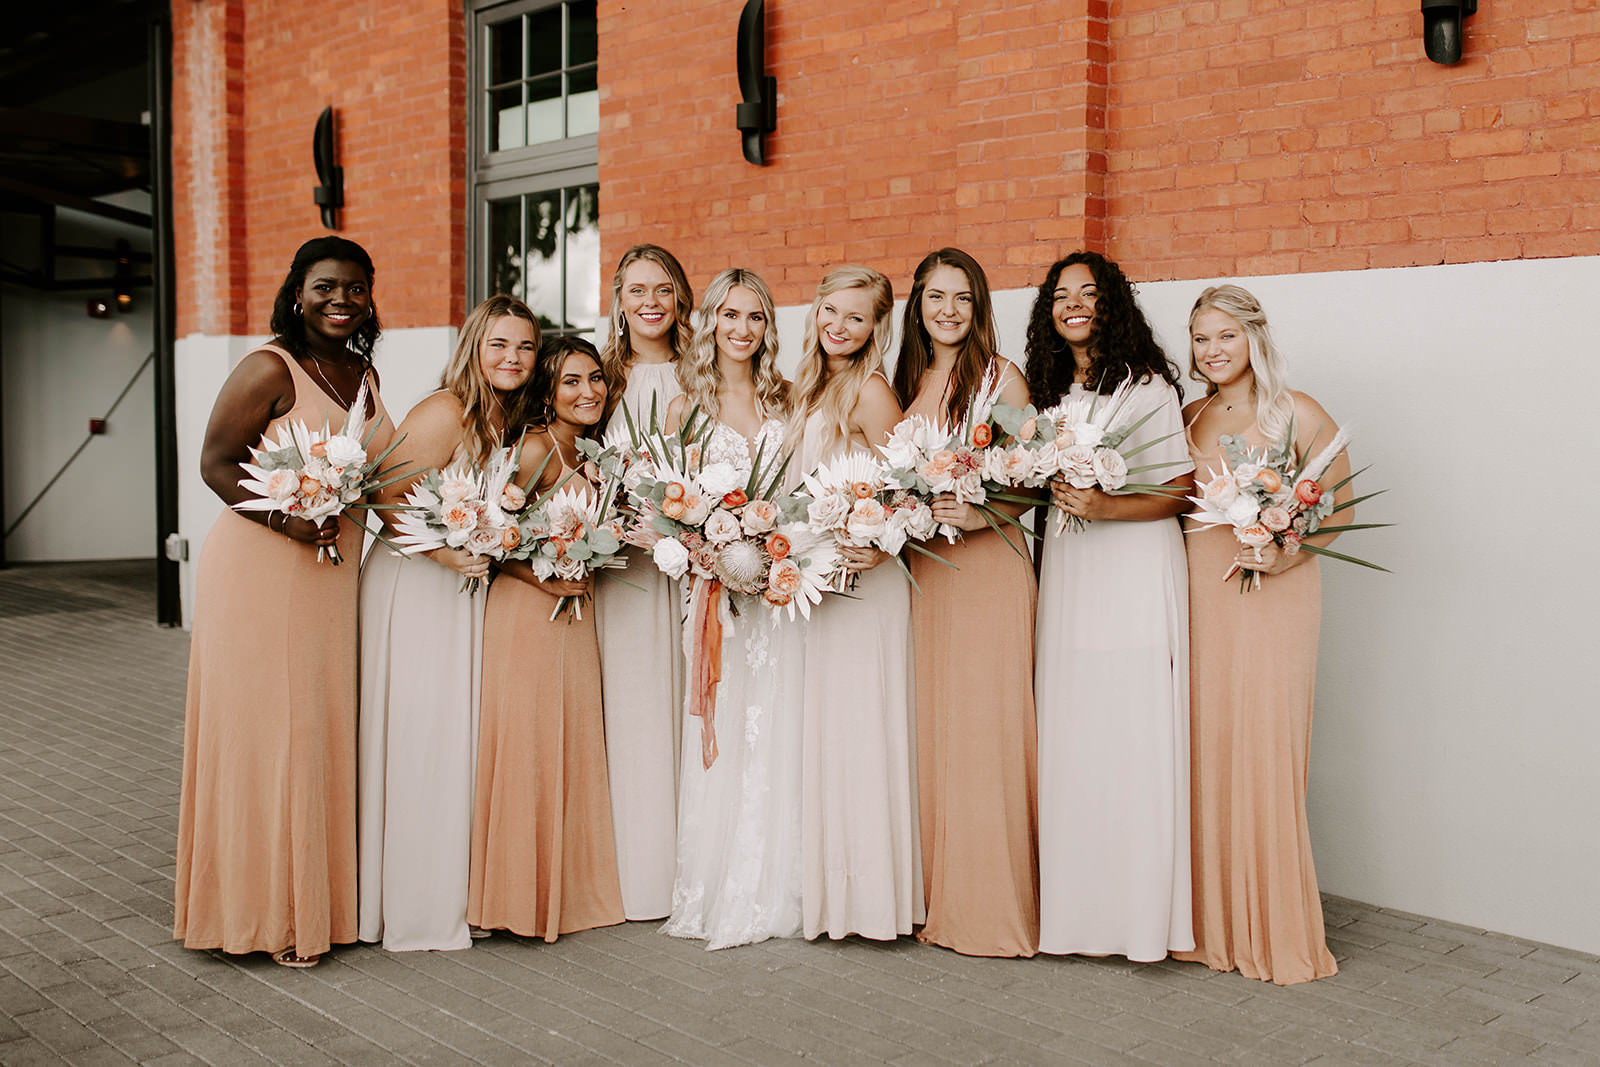 Boho Bridal Party Portrait, Bridesmaids in Mix and Match Neutral and Sandy Blush Dresses Holding Whimsical Palm Tree Leaves, Blush Pink and Burnt Orange Roses, King Protea Floral Bouquets   Tampa Bay Wedding Planner Coastal Coordinating